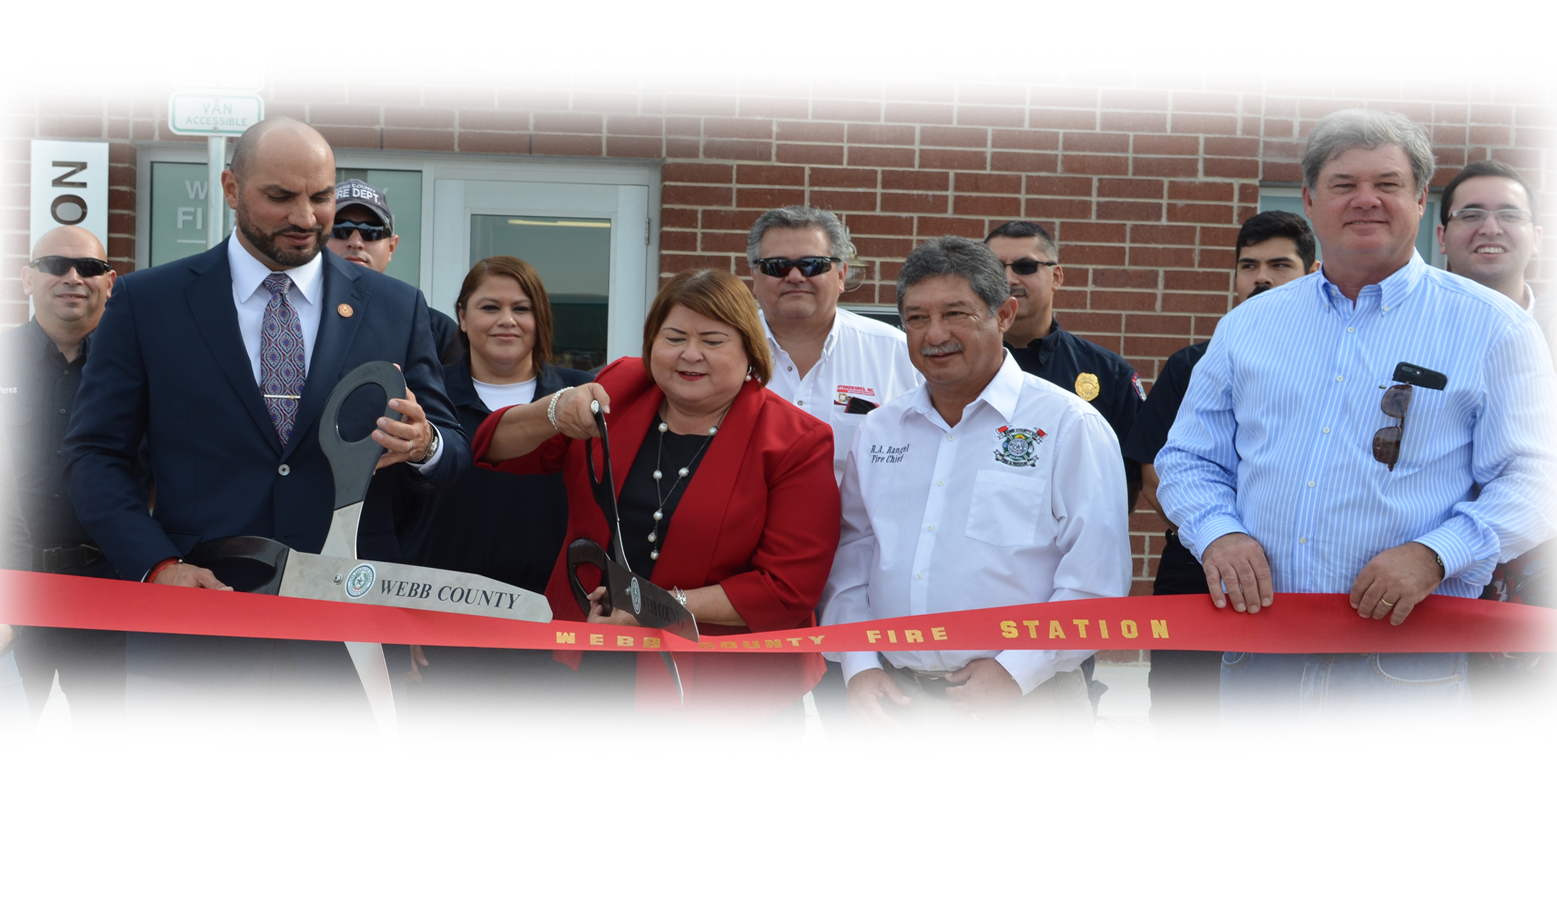 Judge Tano Tijerina Webb County Fire Station Opening Ceremony